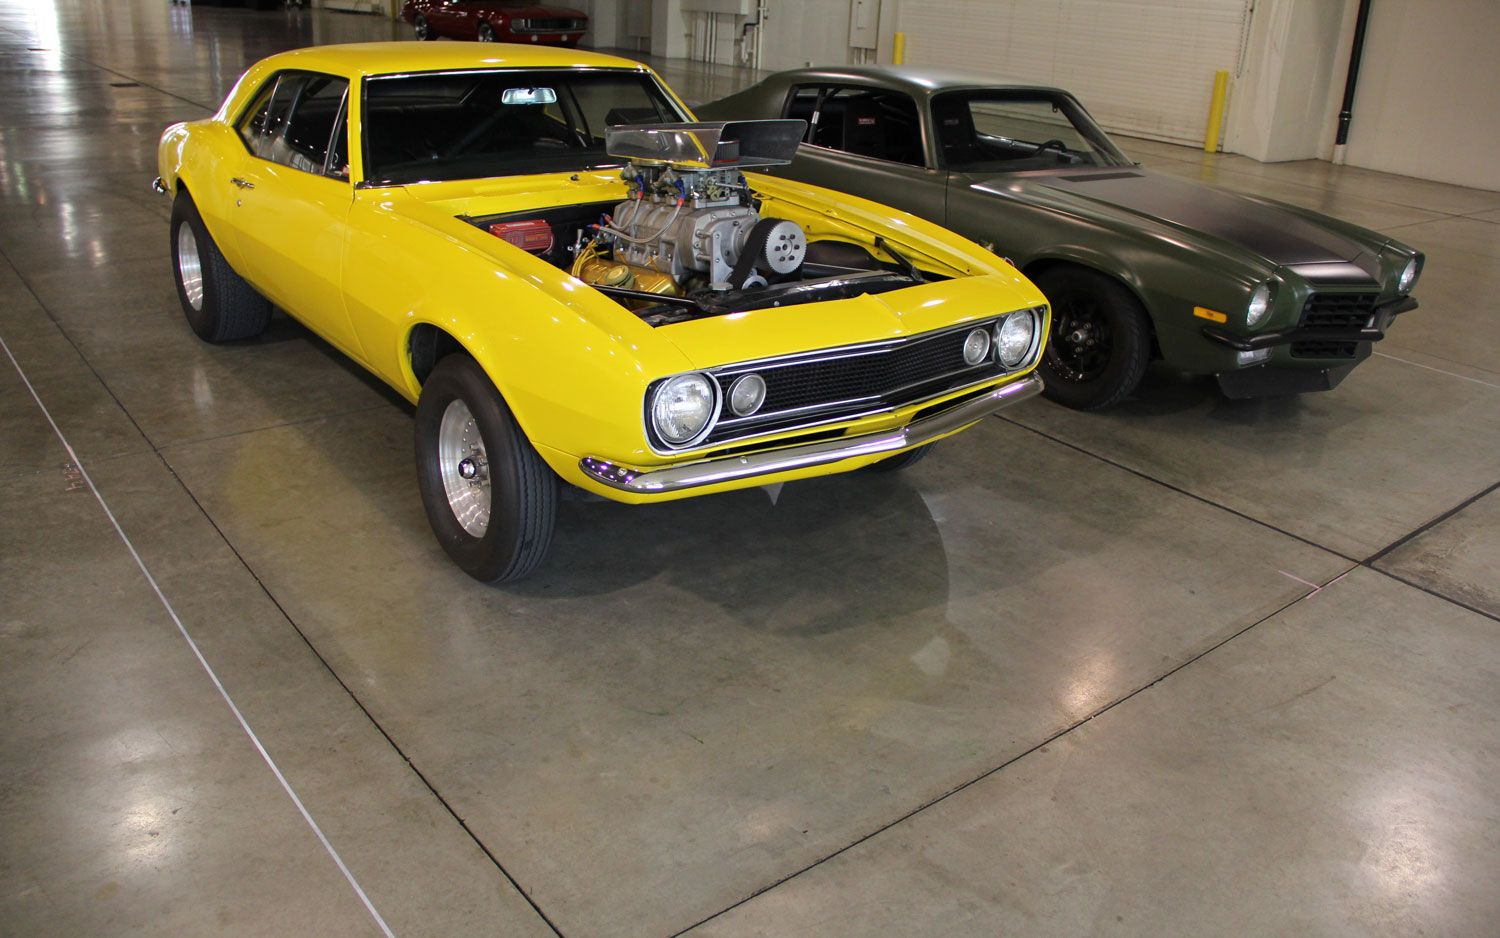 Www old classic hotrods com vintage camaro hot rod project cars f bomb